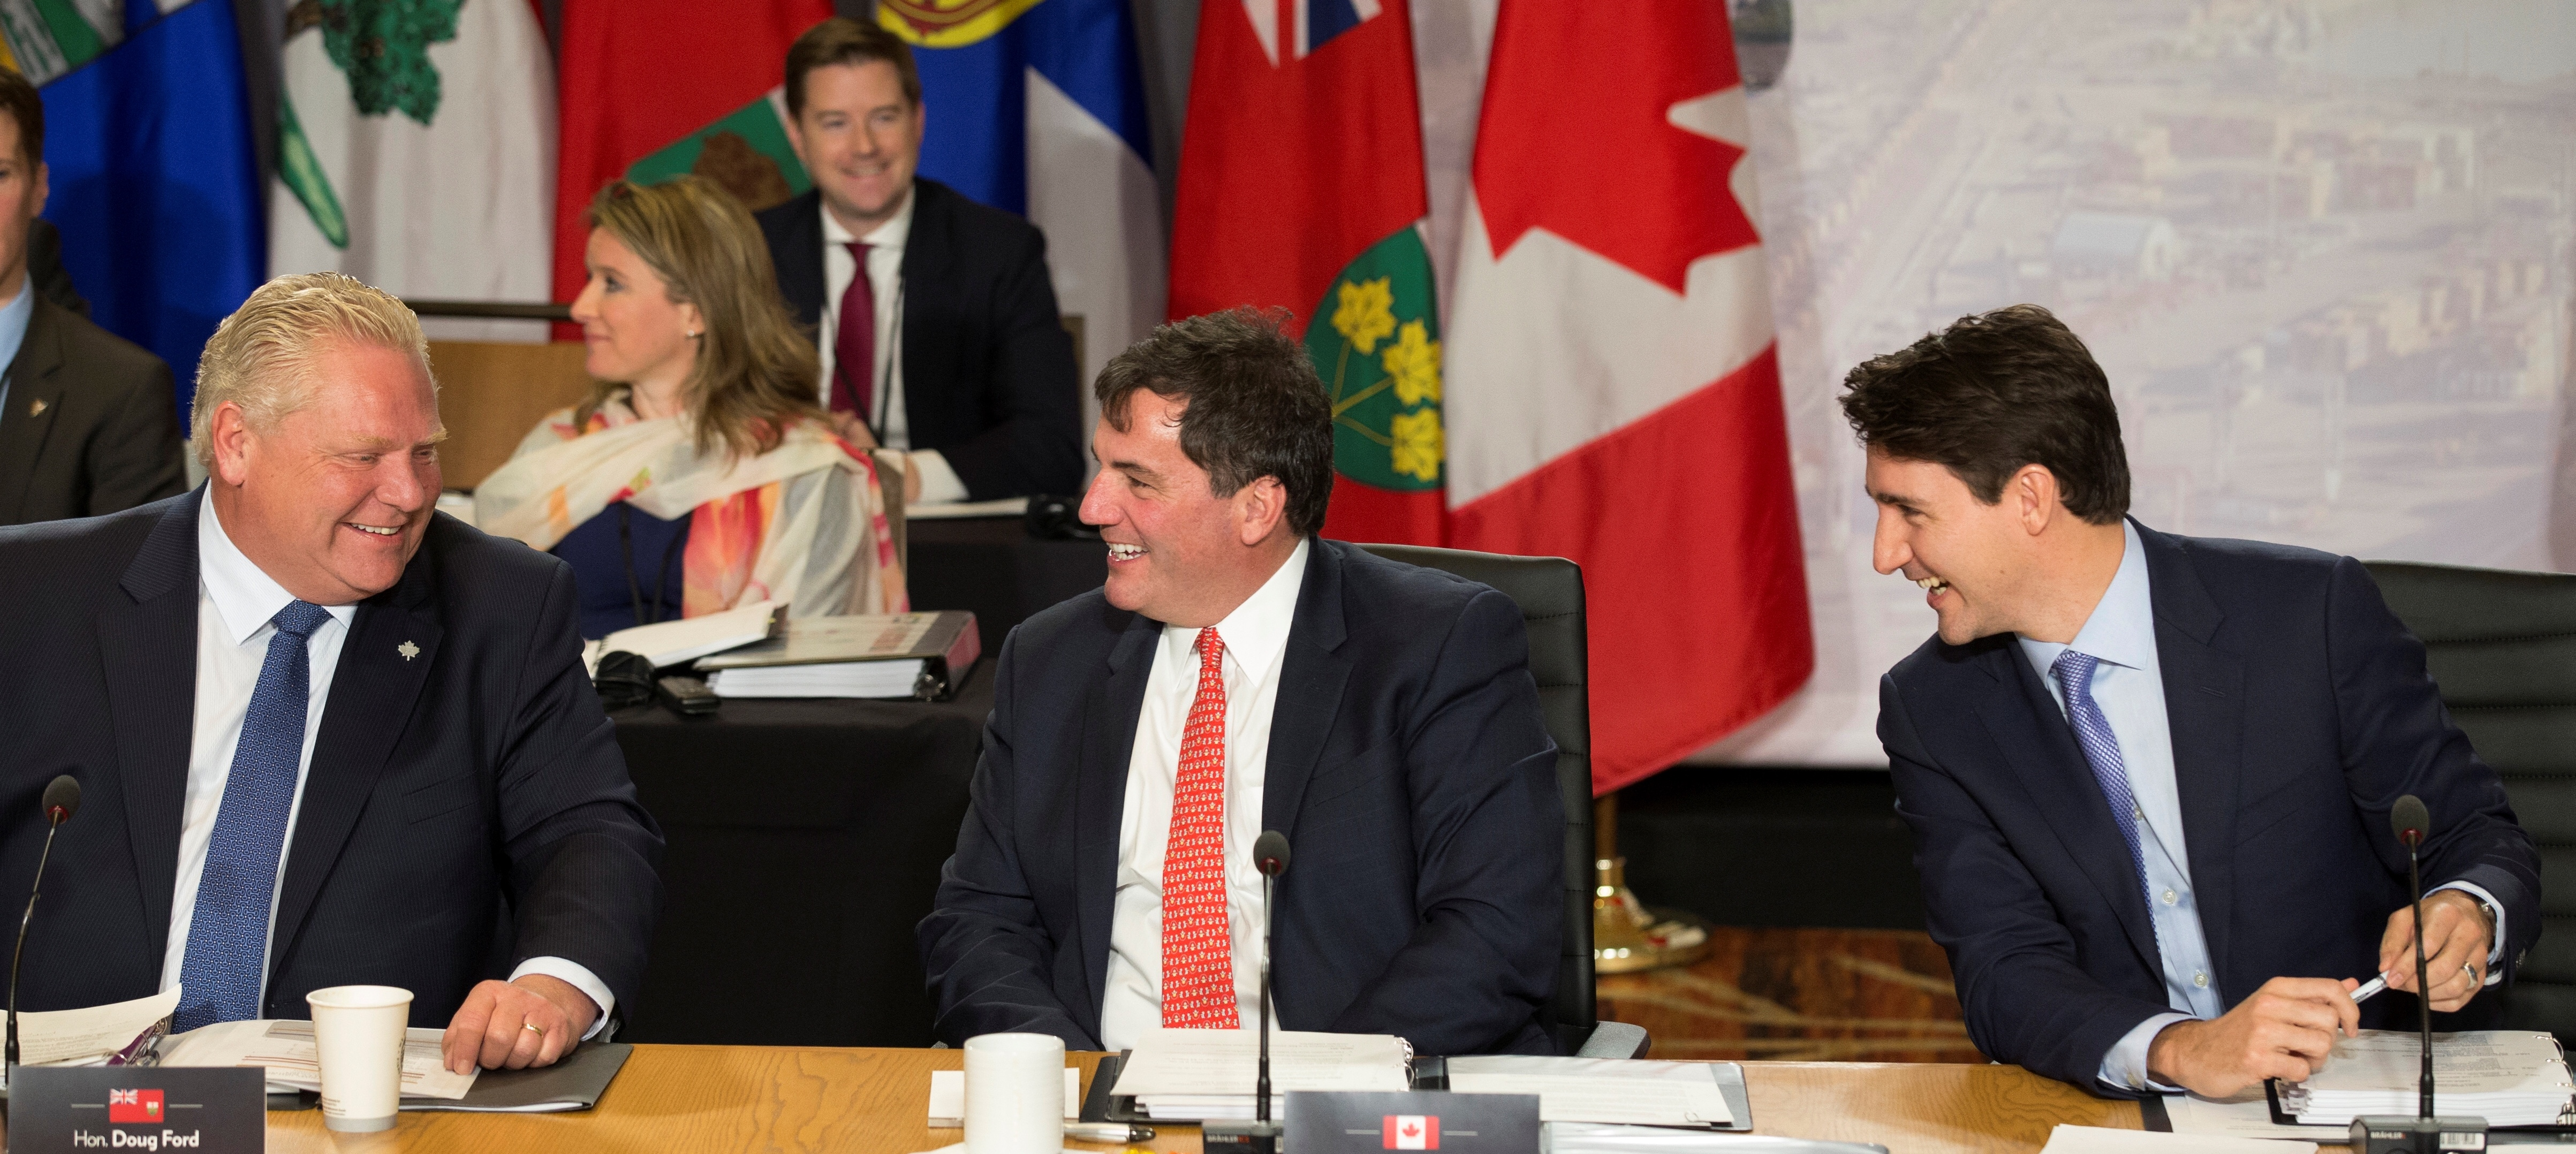 Canadian Prime Minister Justin Trudeau (R) laughs with Ontario Premier Doug Ford (L) and Minister of Intergovernmental Affairs Dominic LeBlanc as they wait to begin the First Ministers' Meeting in Montreal, Quebec, Canada, December 7, 2018.REUTERS/Christinne Muschi